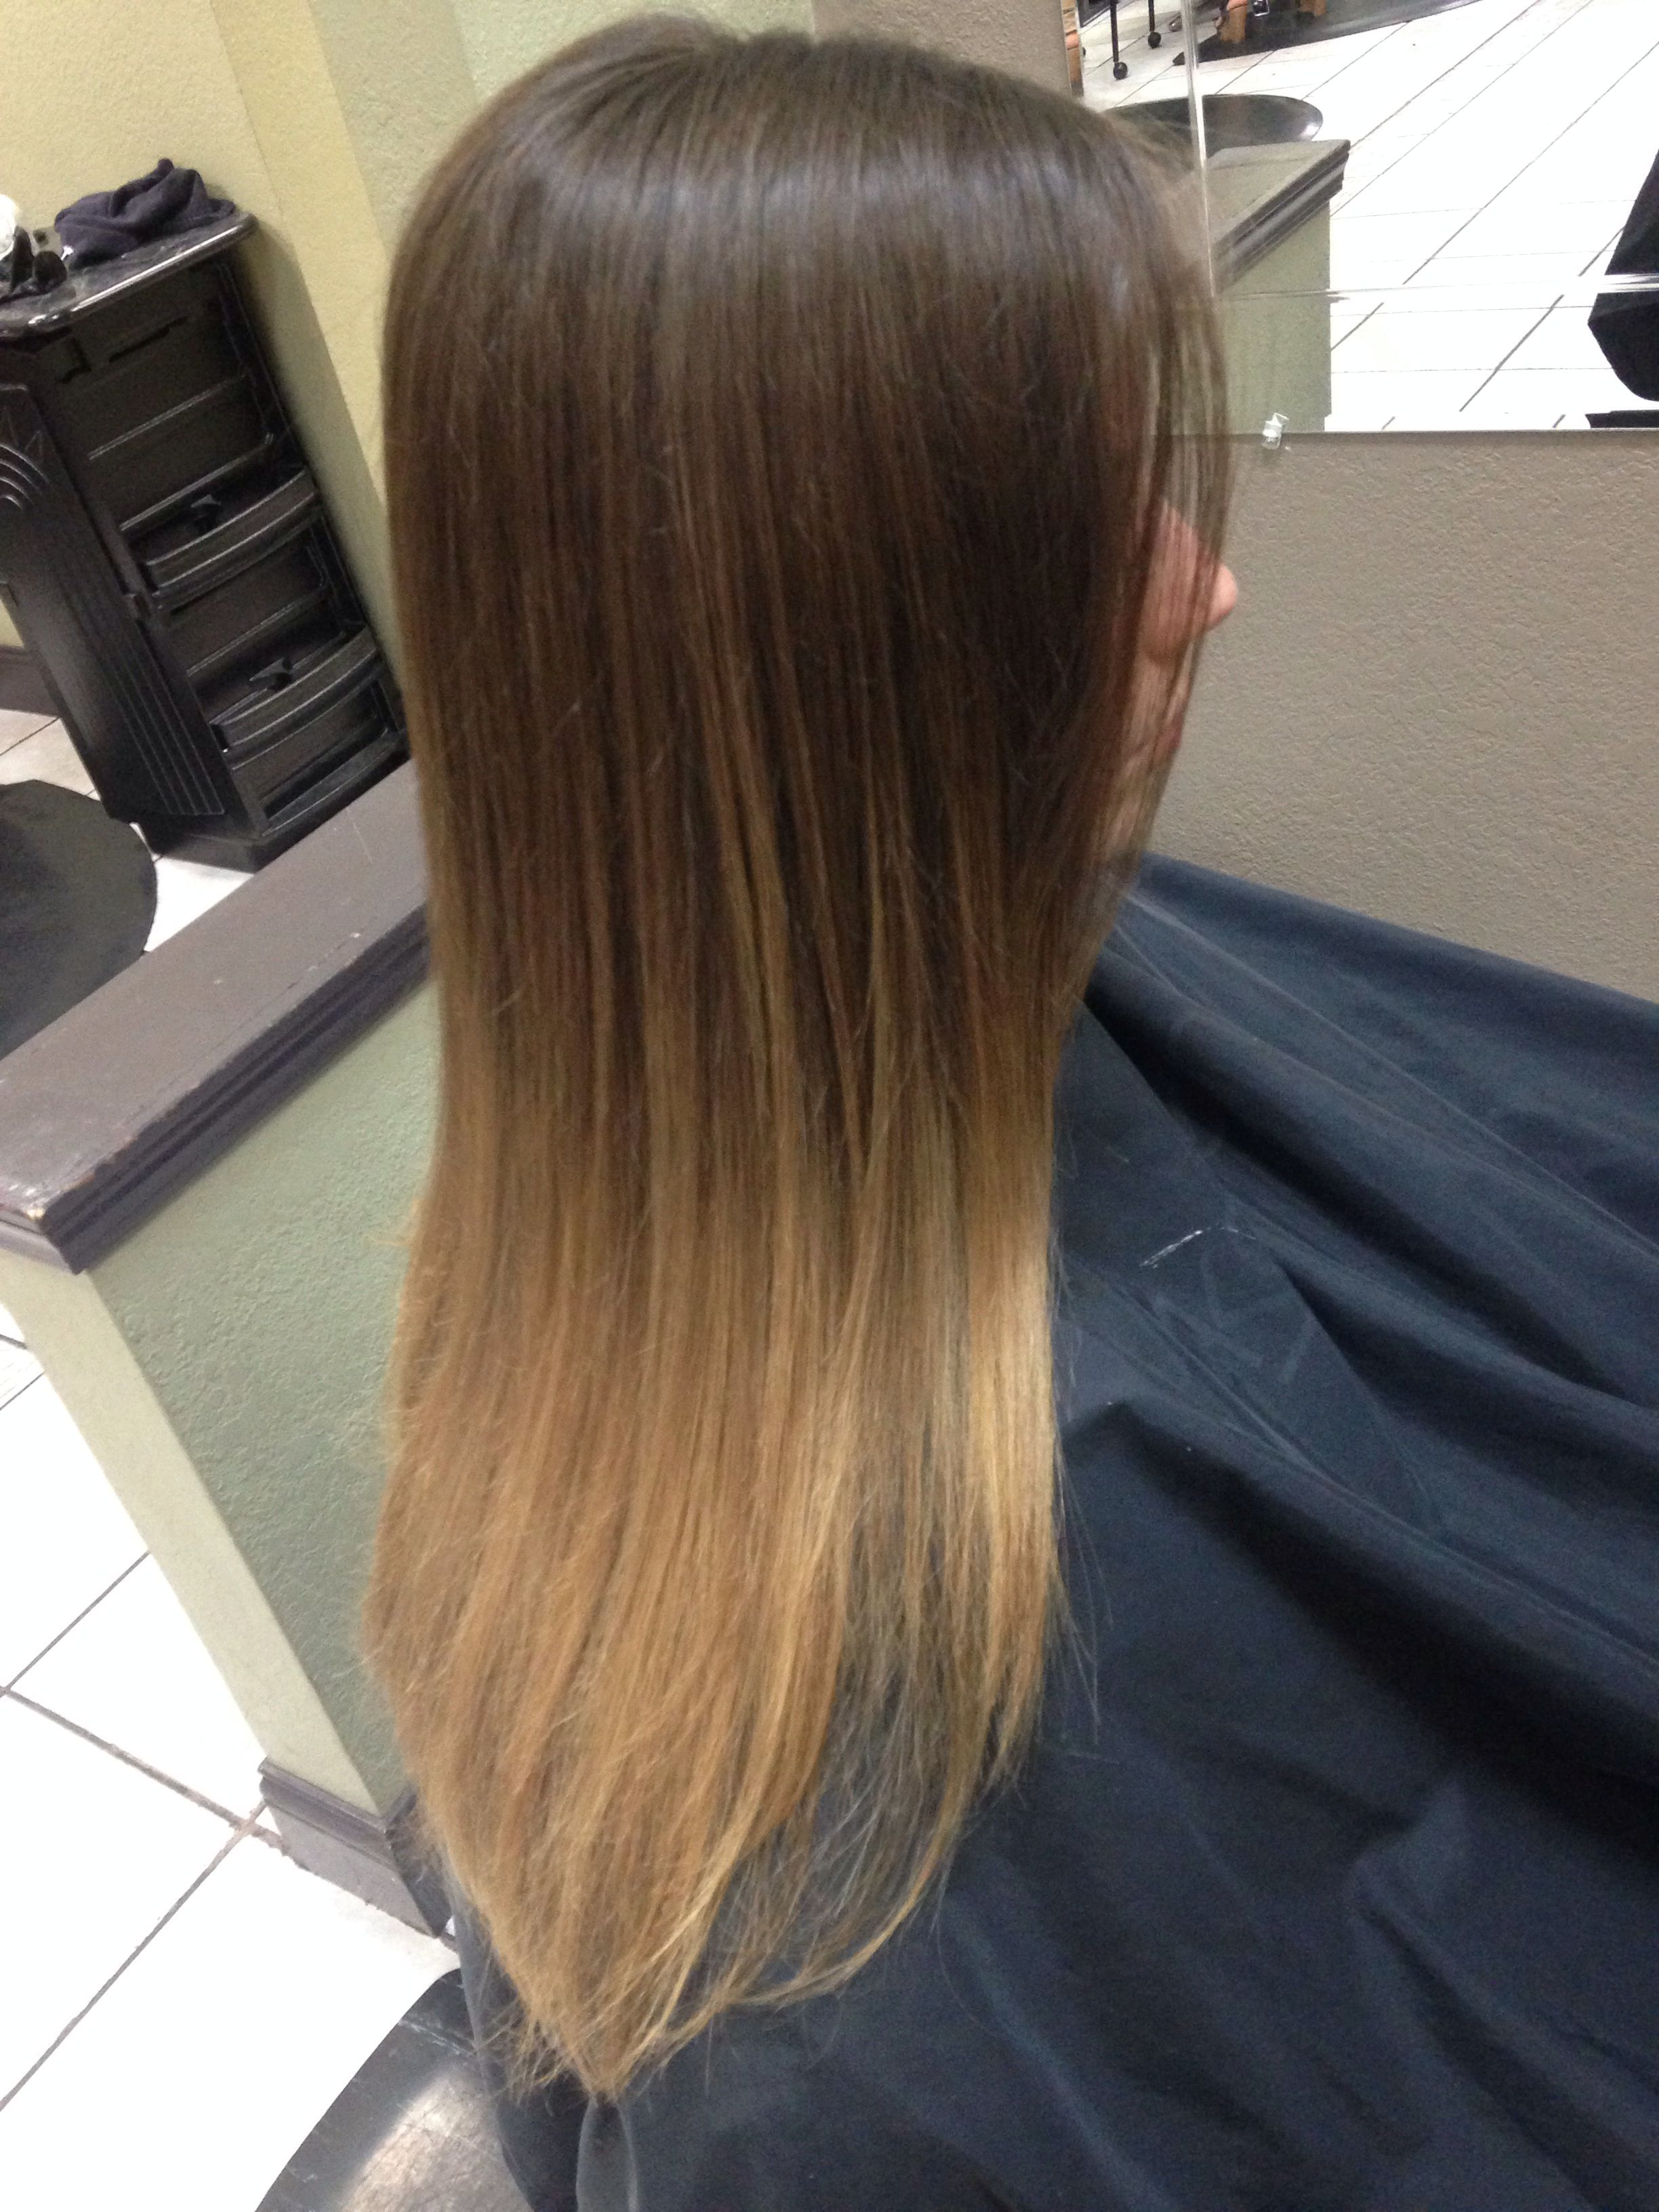 Straight hair ombré balayage. Brunette brown blonde. Long